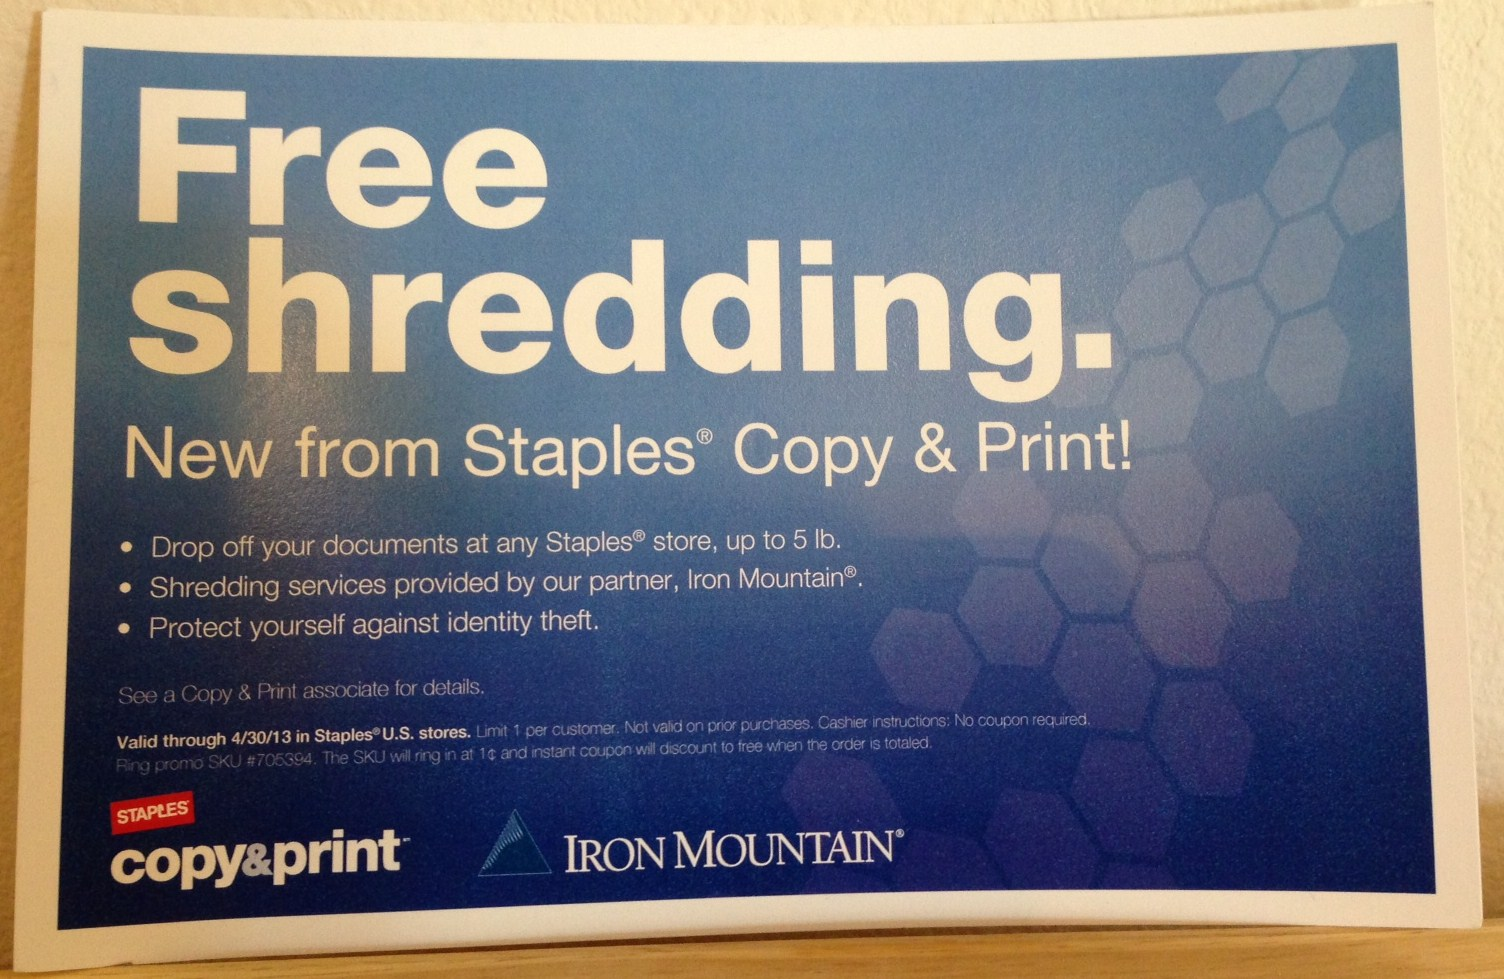 Staples: One-Stop Shop to Help You Shed, Shred, and Get